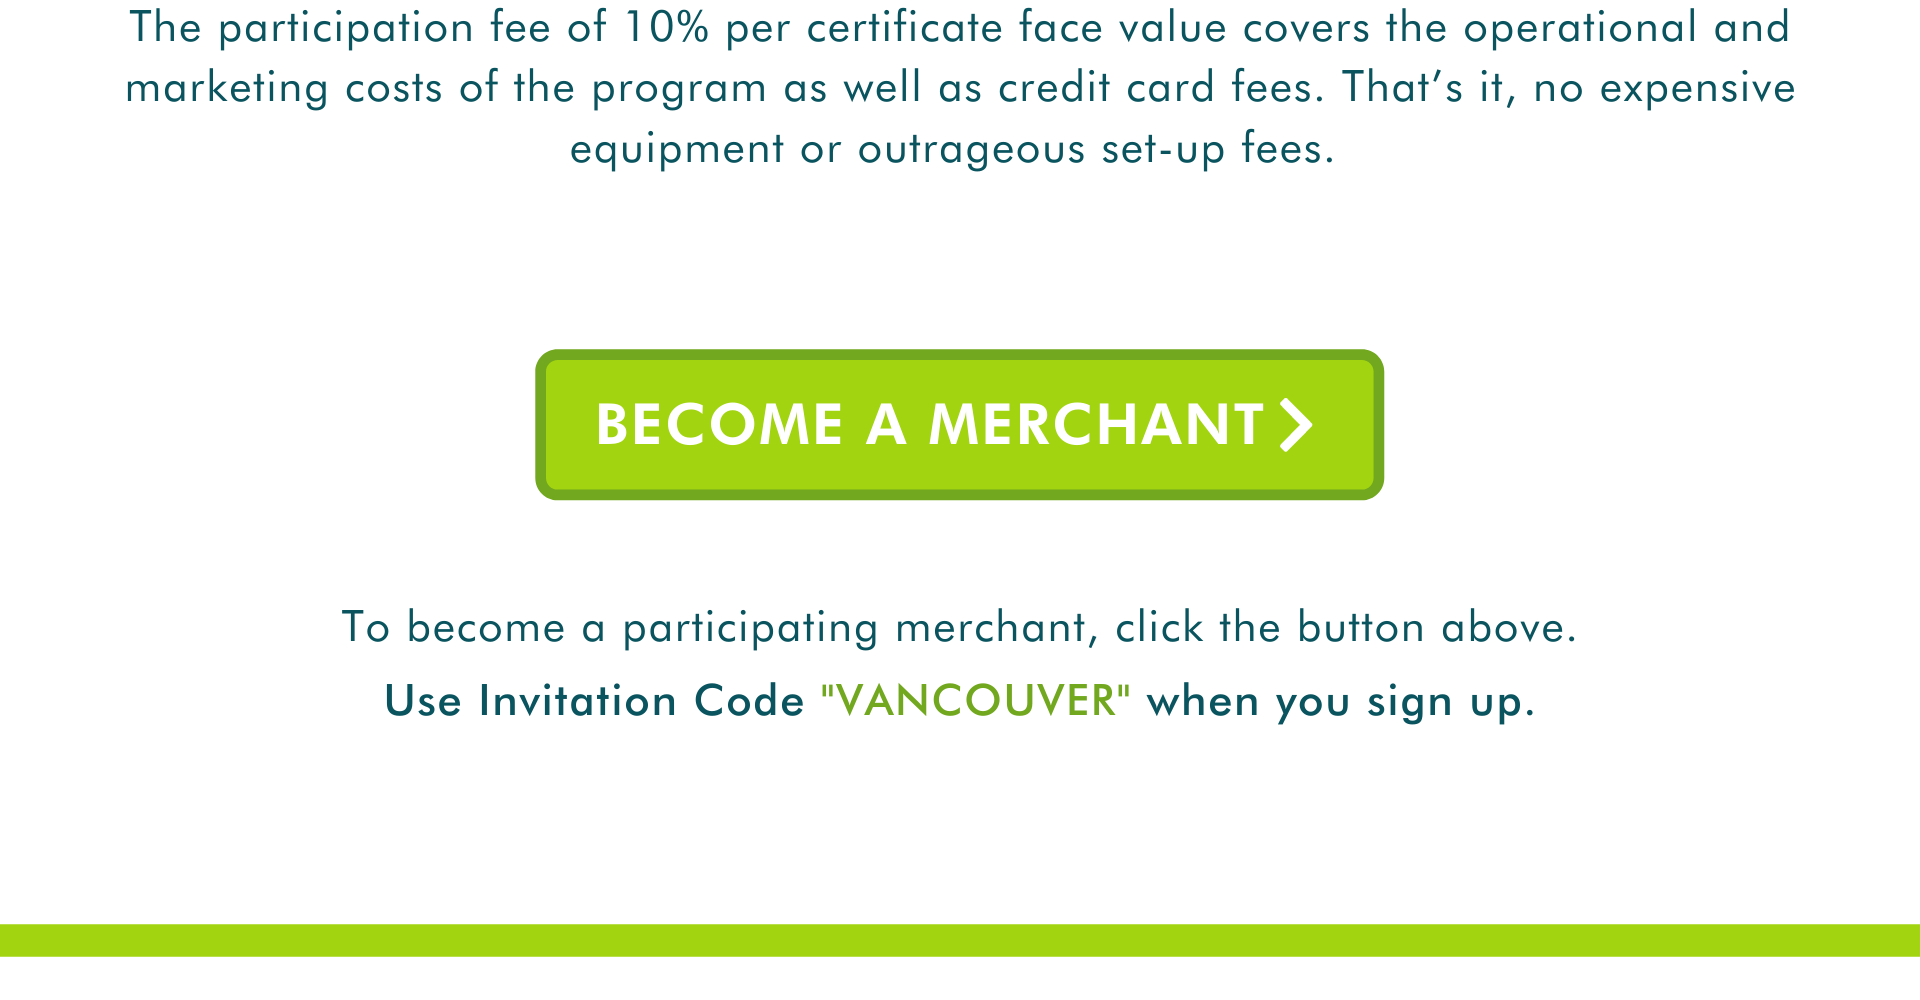 """The participation fee of 10% per certificate face value covers the operational and marketing costs of the program as well as credit card fees. That's it, no expensive equipment or outrageous set-up fees. To become a participating merchant, click the button above.  Use Invitation Code """"VANCOUVER"""" when you sign up. Become a merchant"""